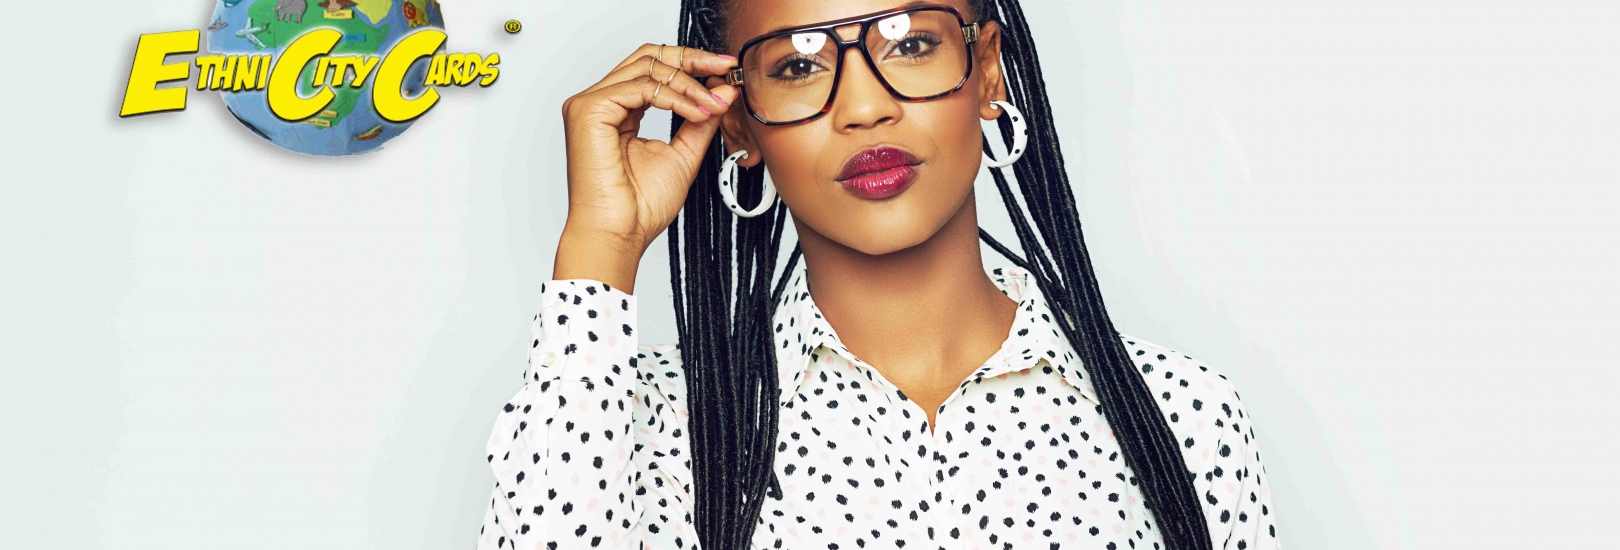 Head and shoulders portrait of fashionable black woman wearing glasses